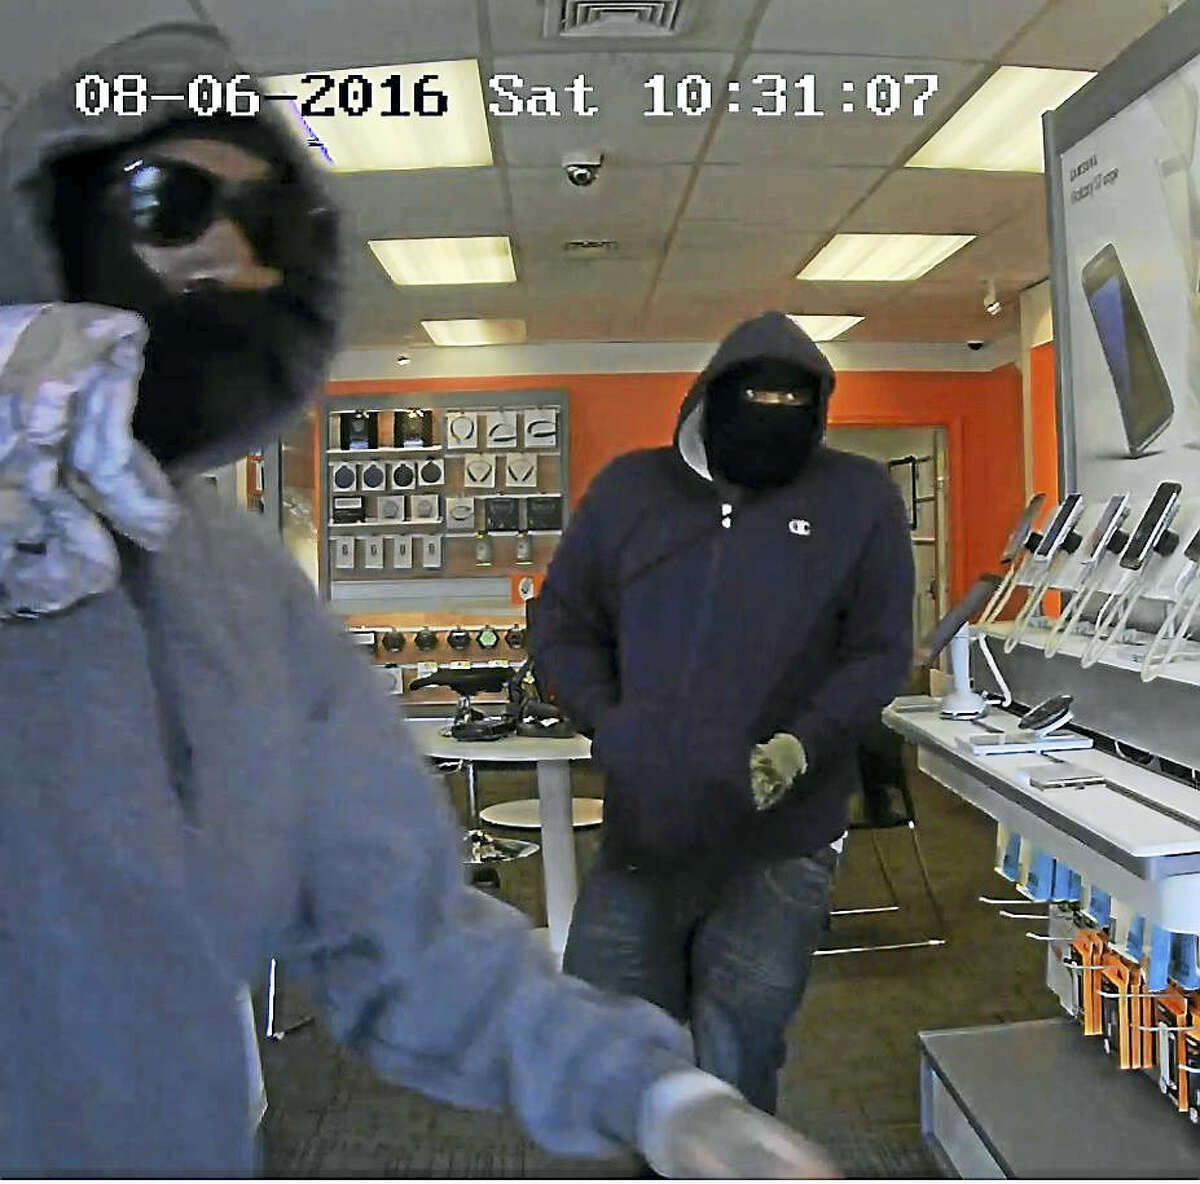 East Haven police are searching for two suspects who allegedly stole iPhones and cash from an AT&T store on Foxon Boulevard on Saturday, August 6, 2016.